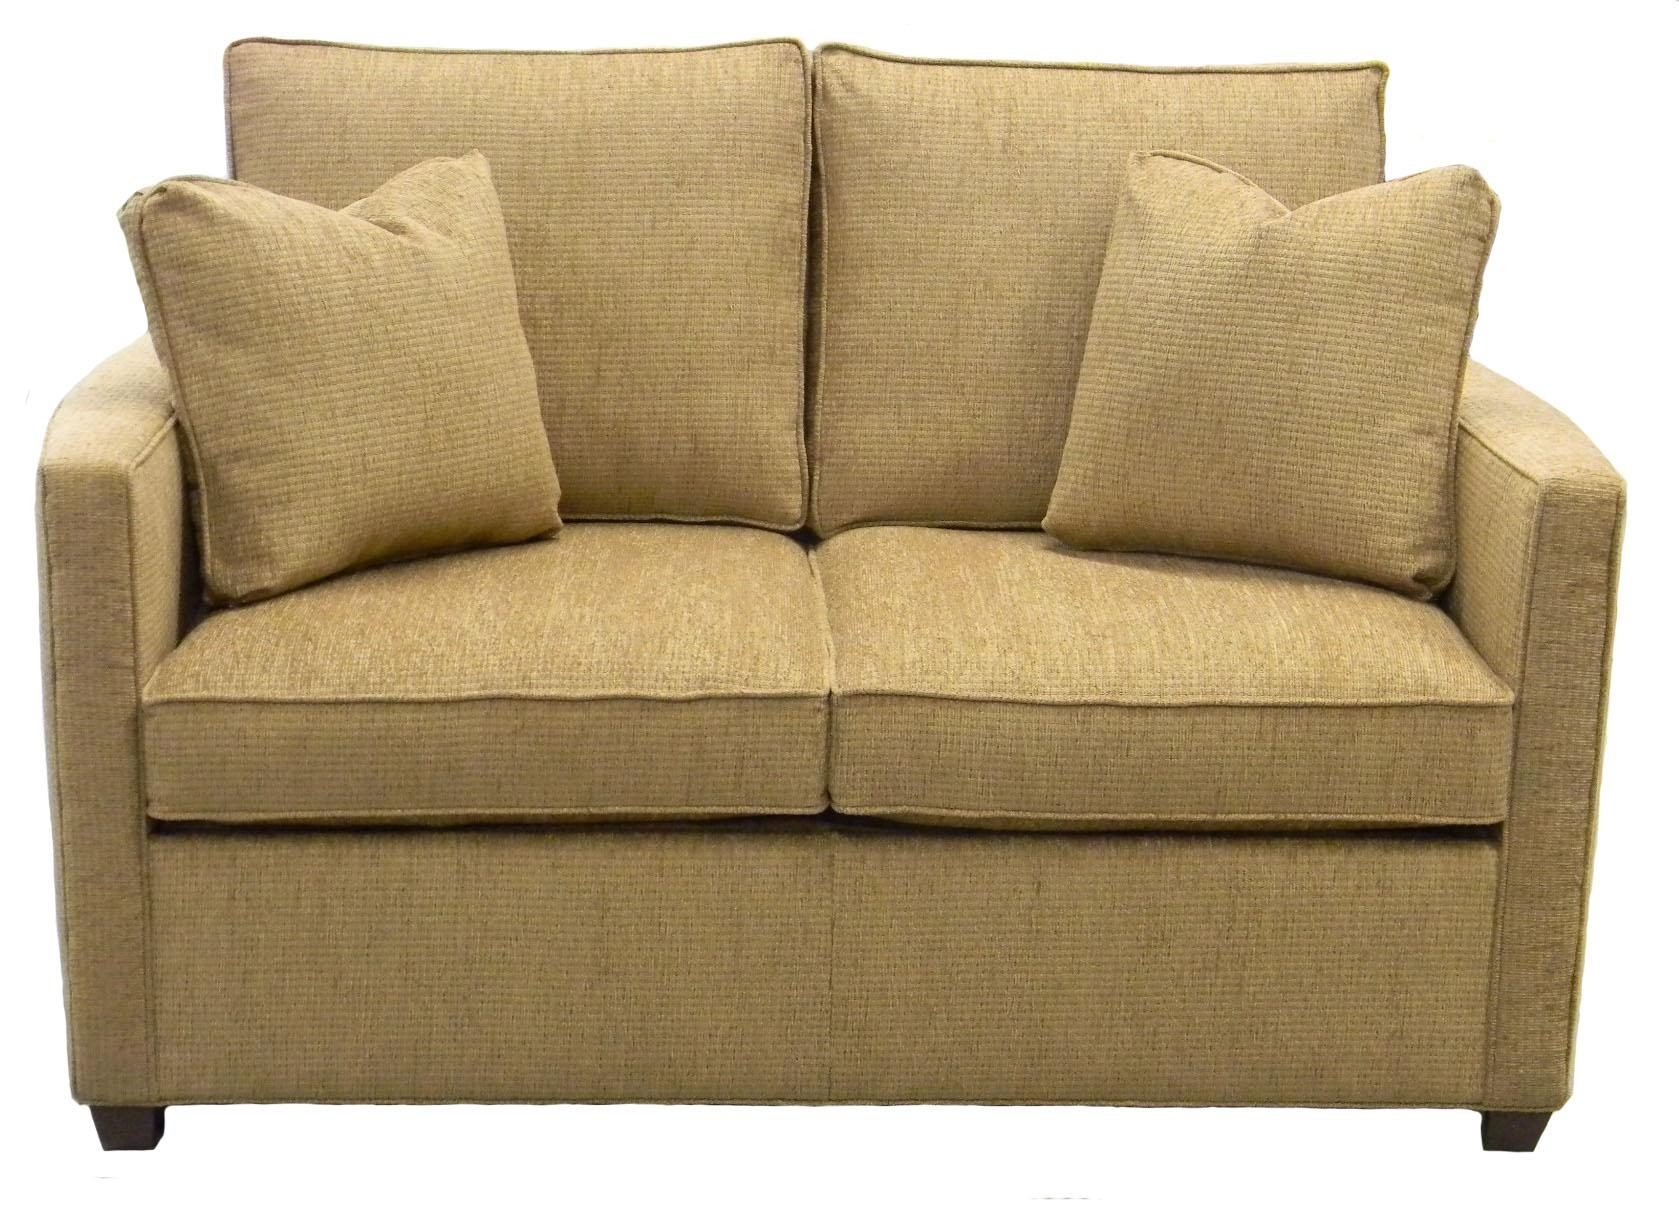 20 choices of loveseat twin sleeper sofas sofa ideas - Sofa gratis ...